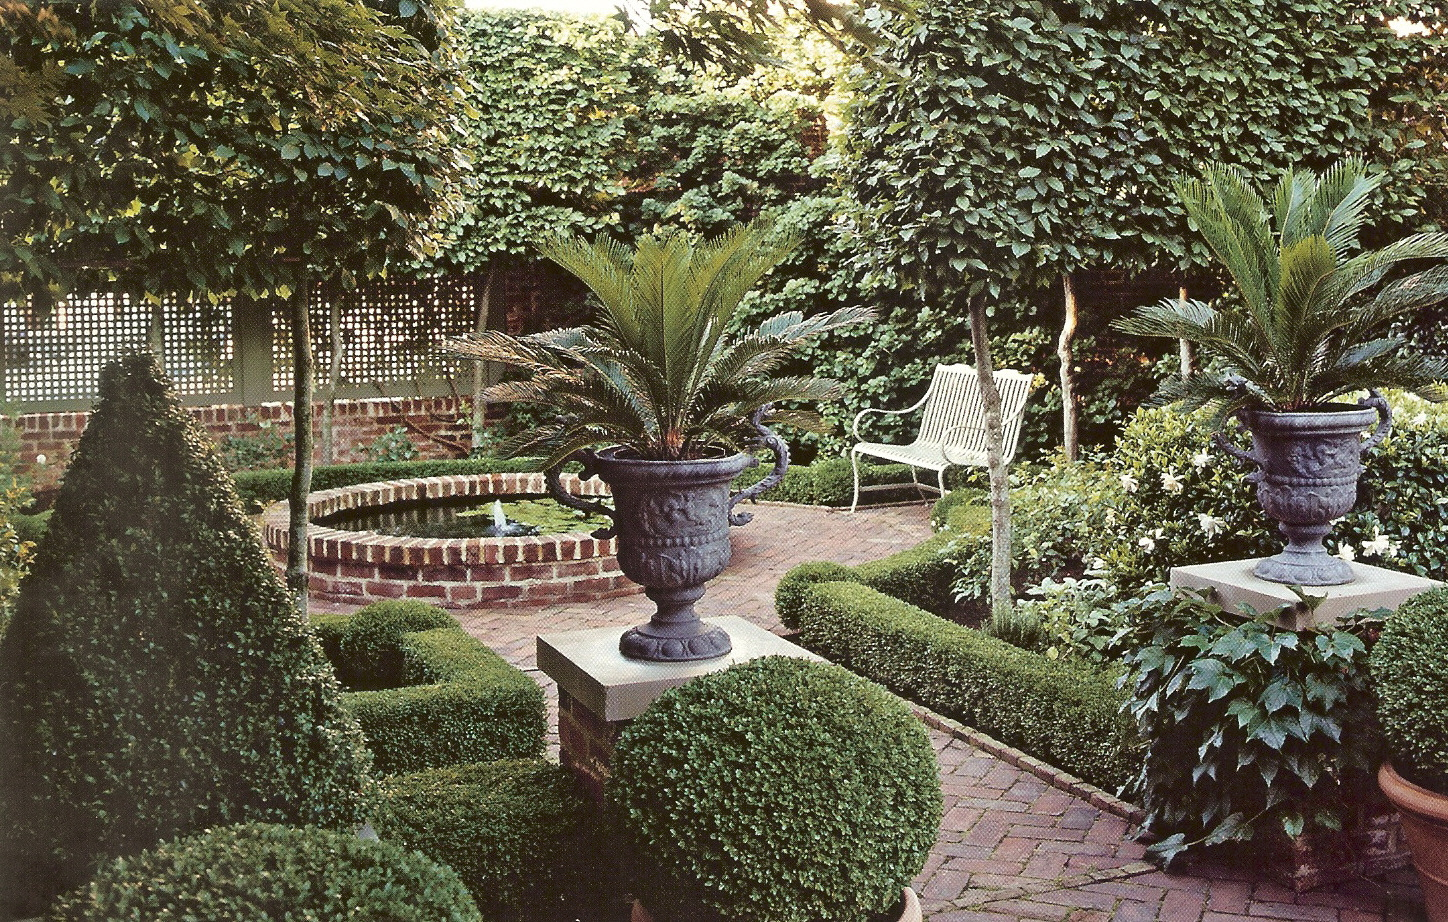 Italian courtyard garden design ideas joy studio design for Italian garden design